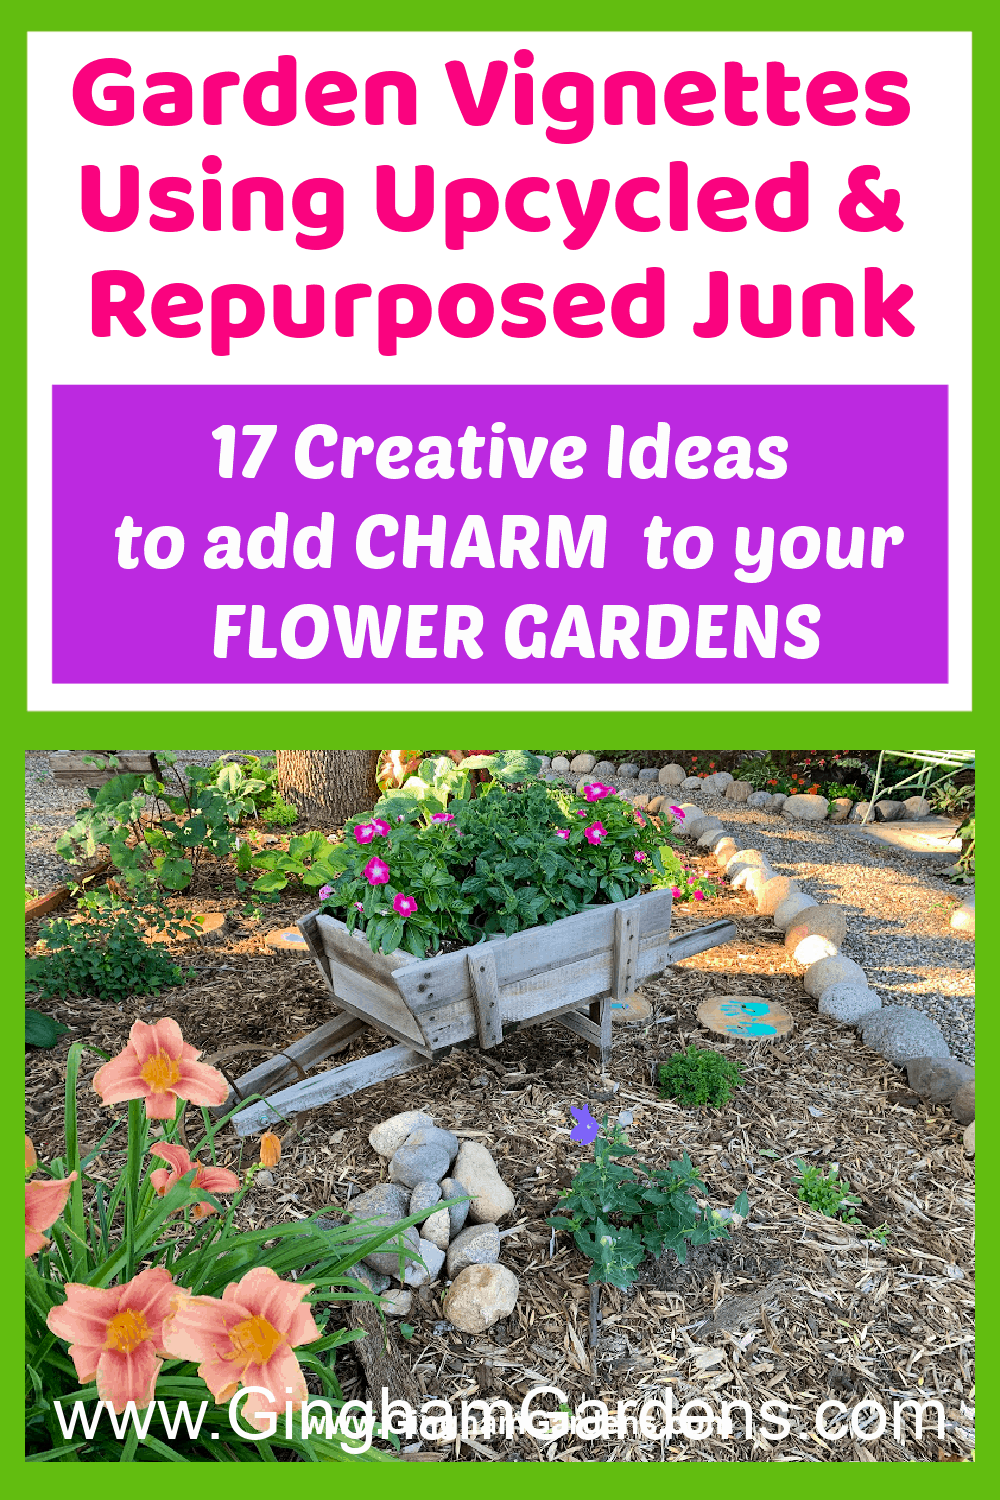 Image of a garden with Text Overlay - Garden Vignettes using upcycled and recycled junk